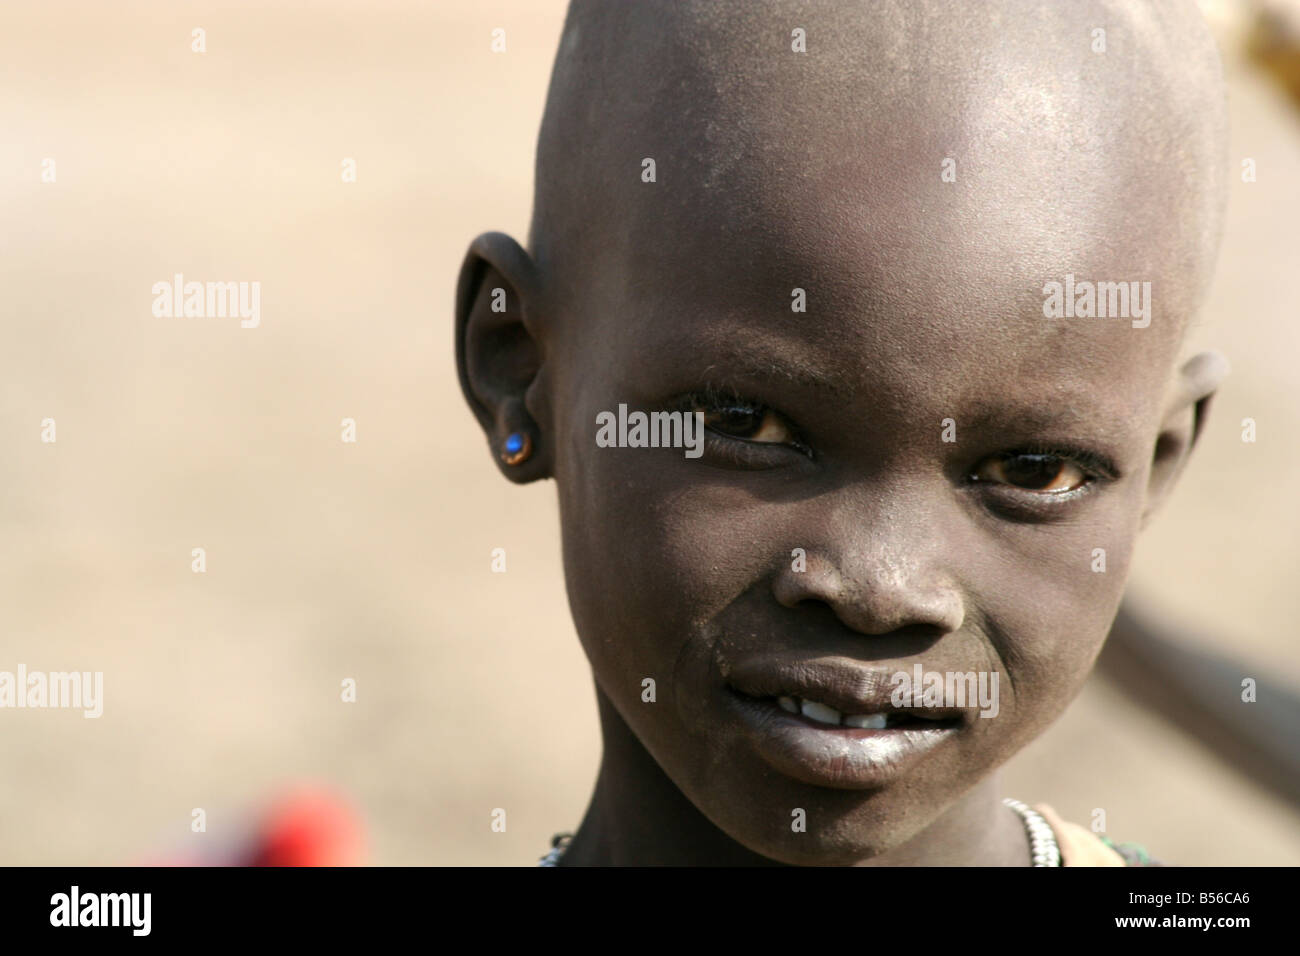 A Dinka girl near Akot South Sudan grows up in a cattle camp of hundreds thousands of cows - Stock Image